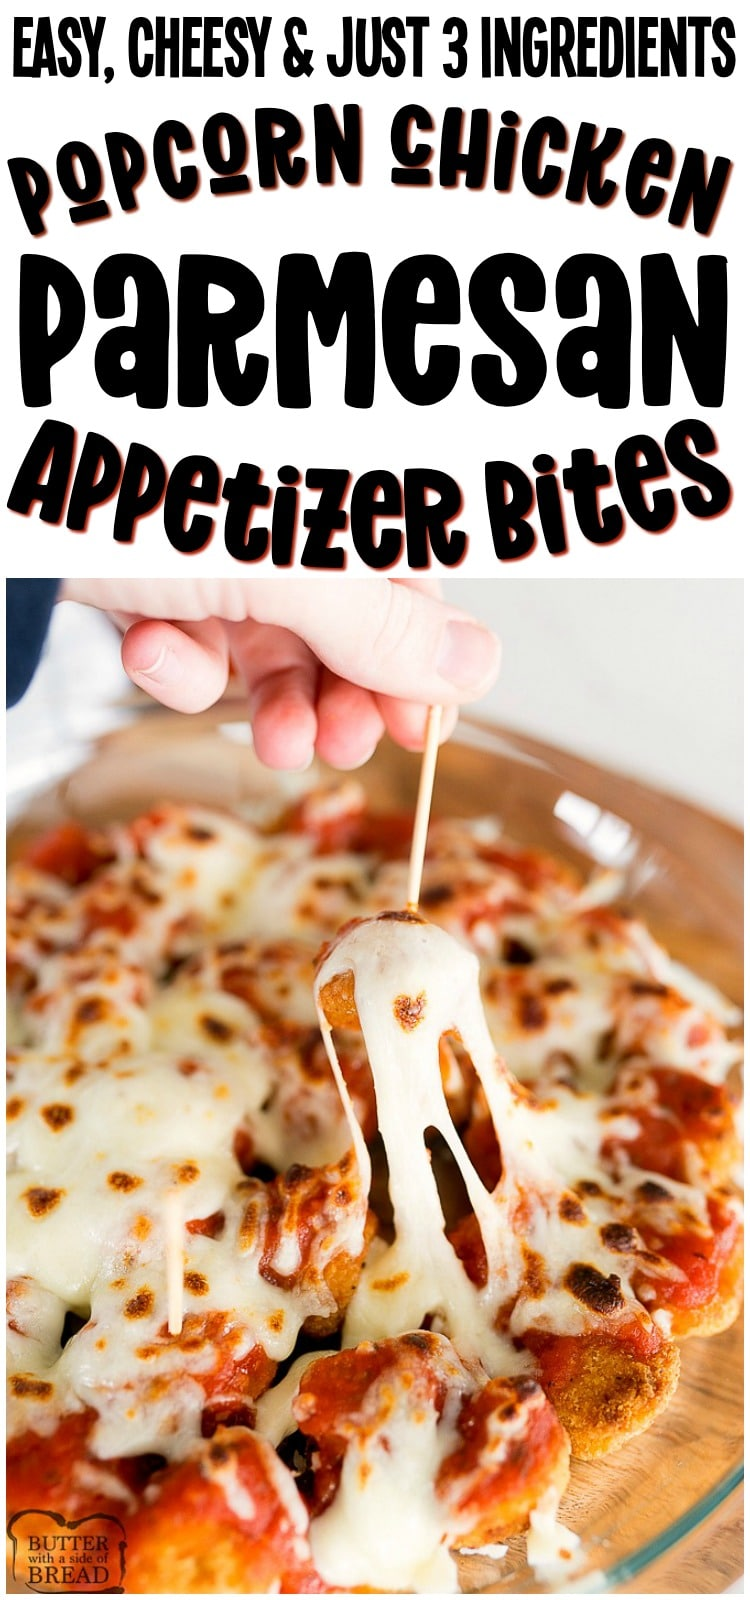 Chicken Parmesan Bites are a delicious appetizer perfect for the big game! With popcorn chicken, a little marinara sauce and mozzarella cheese, this pop-able appetizer couldn't be easier! #chicken #Parmesan #appetizer #gameday #chickenparm #cheese #easyappetizer from BUTTER WITH A SIDE OF BREAD